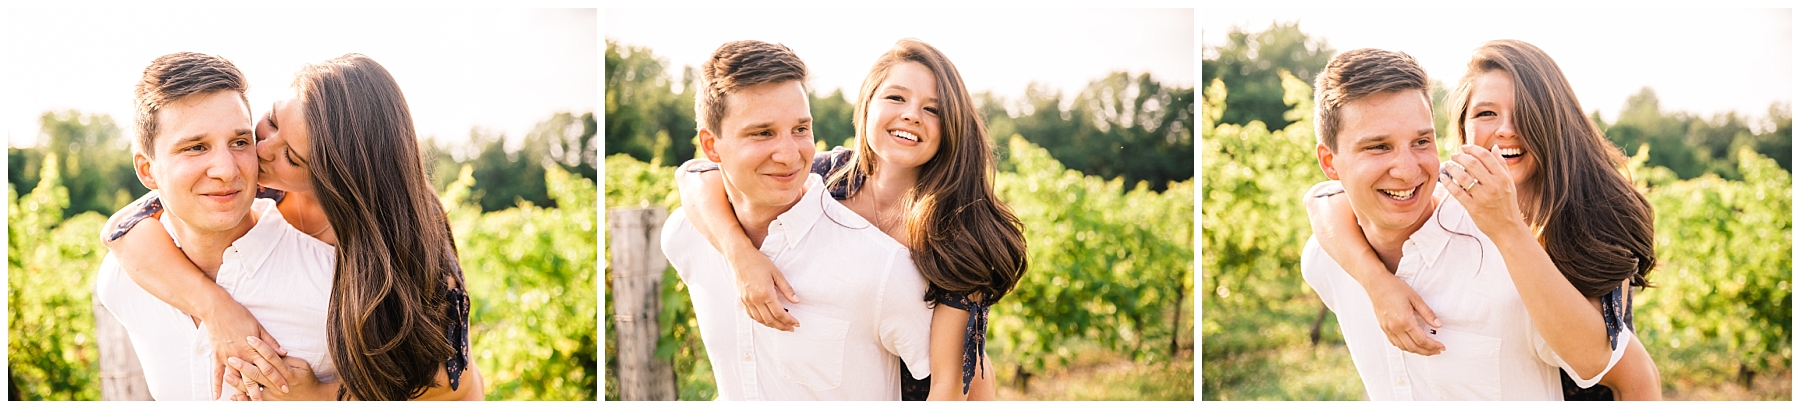 lafayette indiana engagement photography lake michigan vineyard winery wedding photographer elopement destination wedding (33).jpg